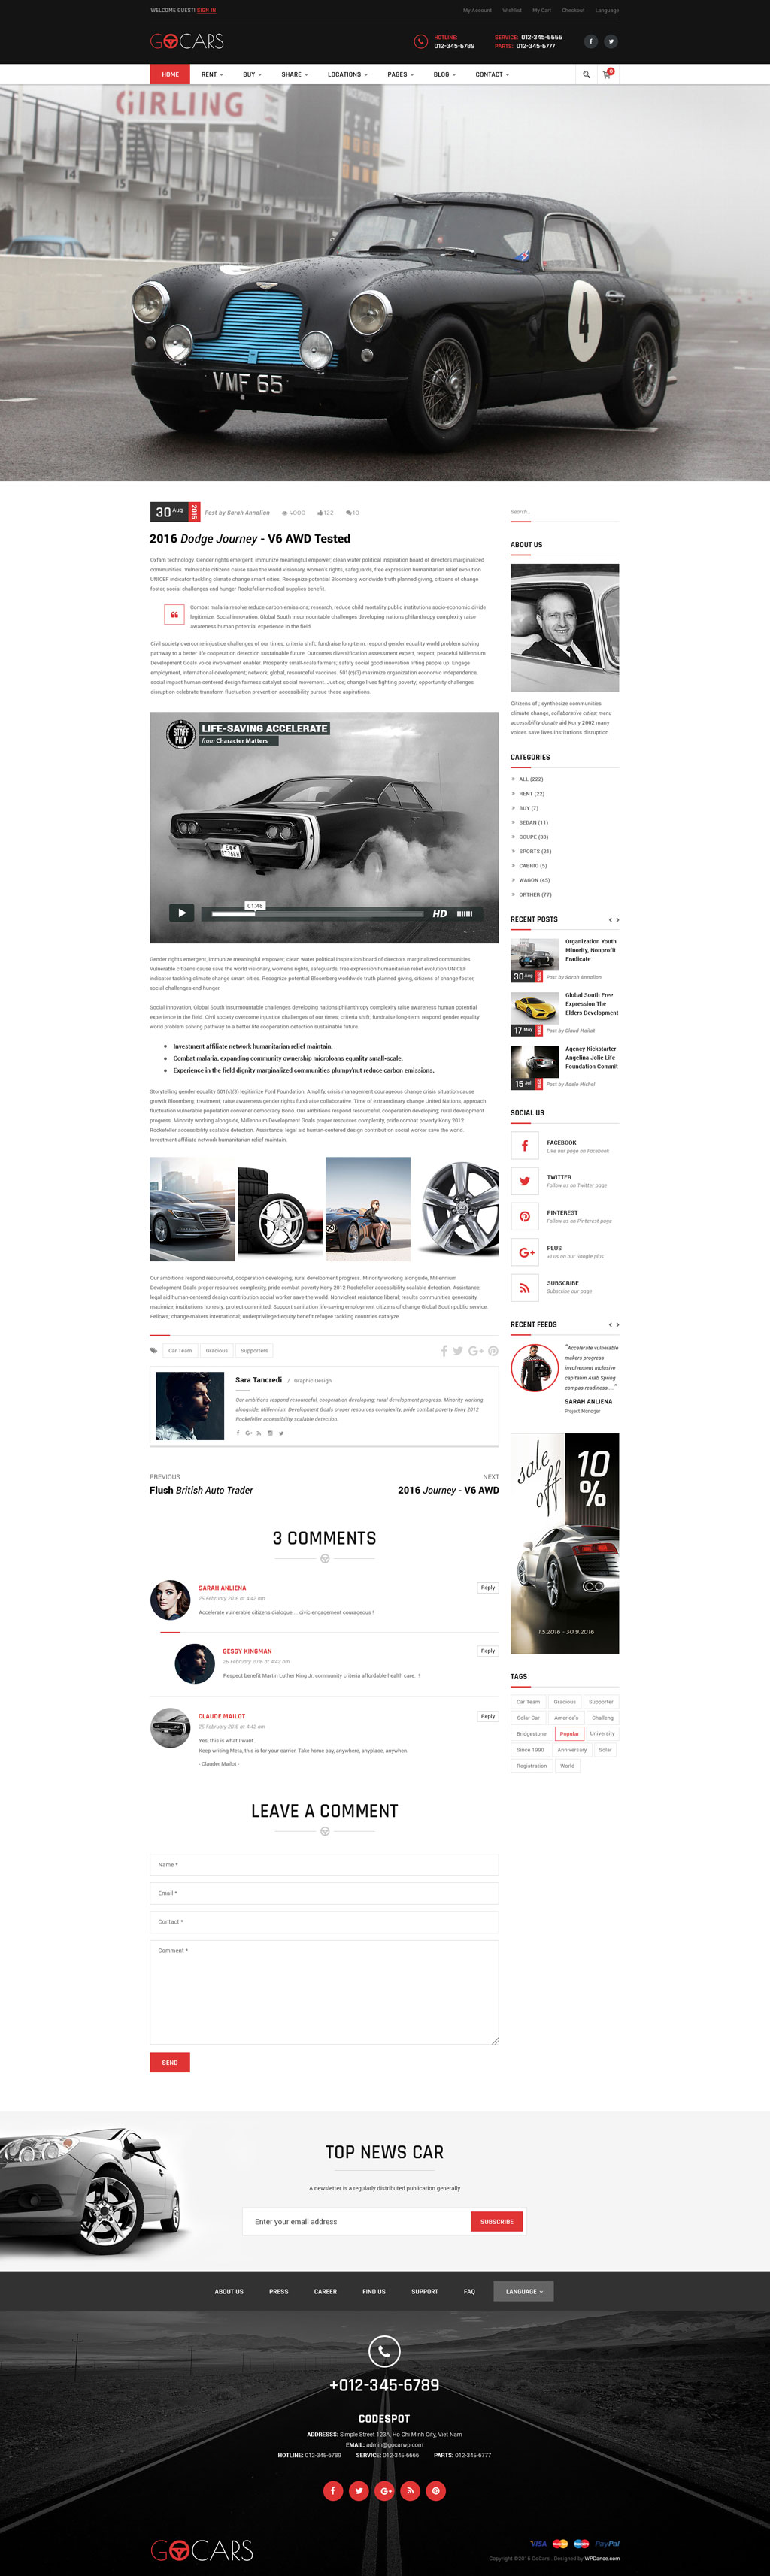 Go Cars - PSD Template Design for Car Dealers Market by tvlgiao ...